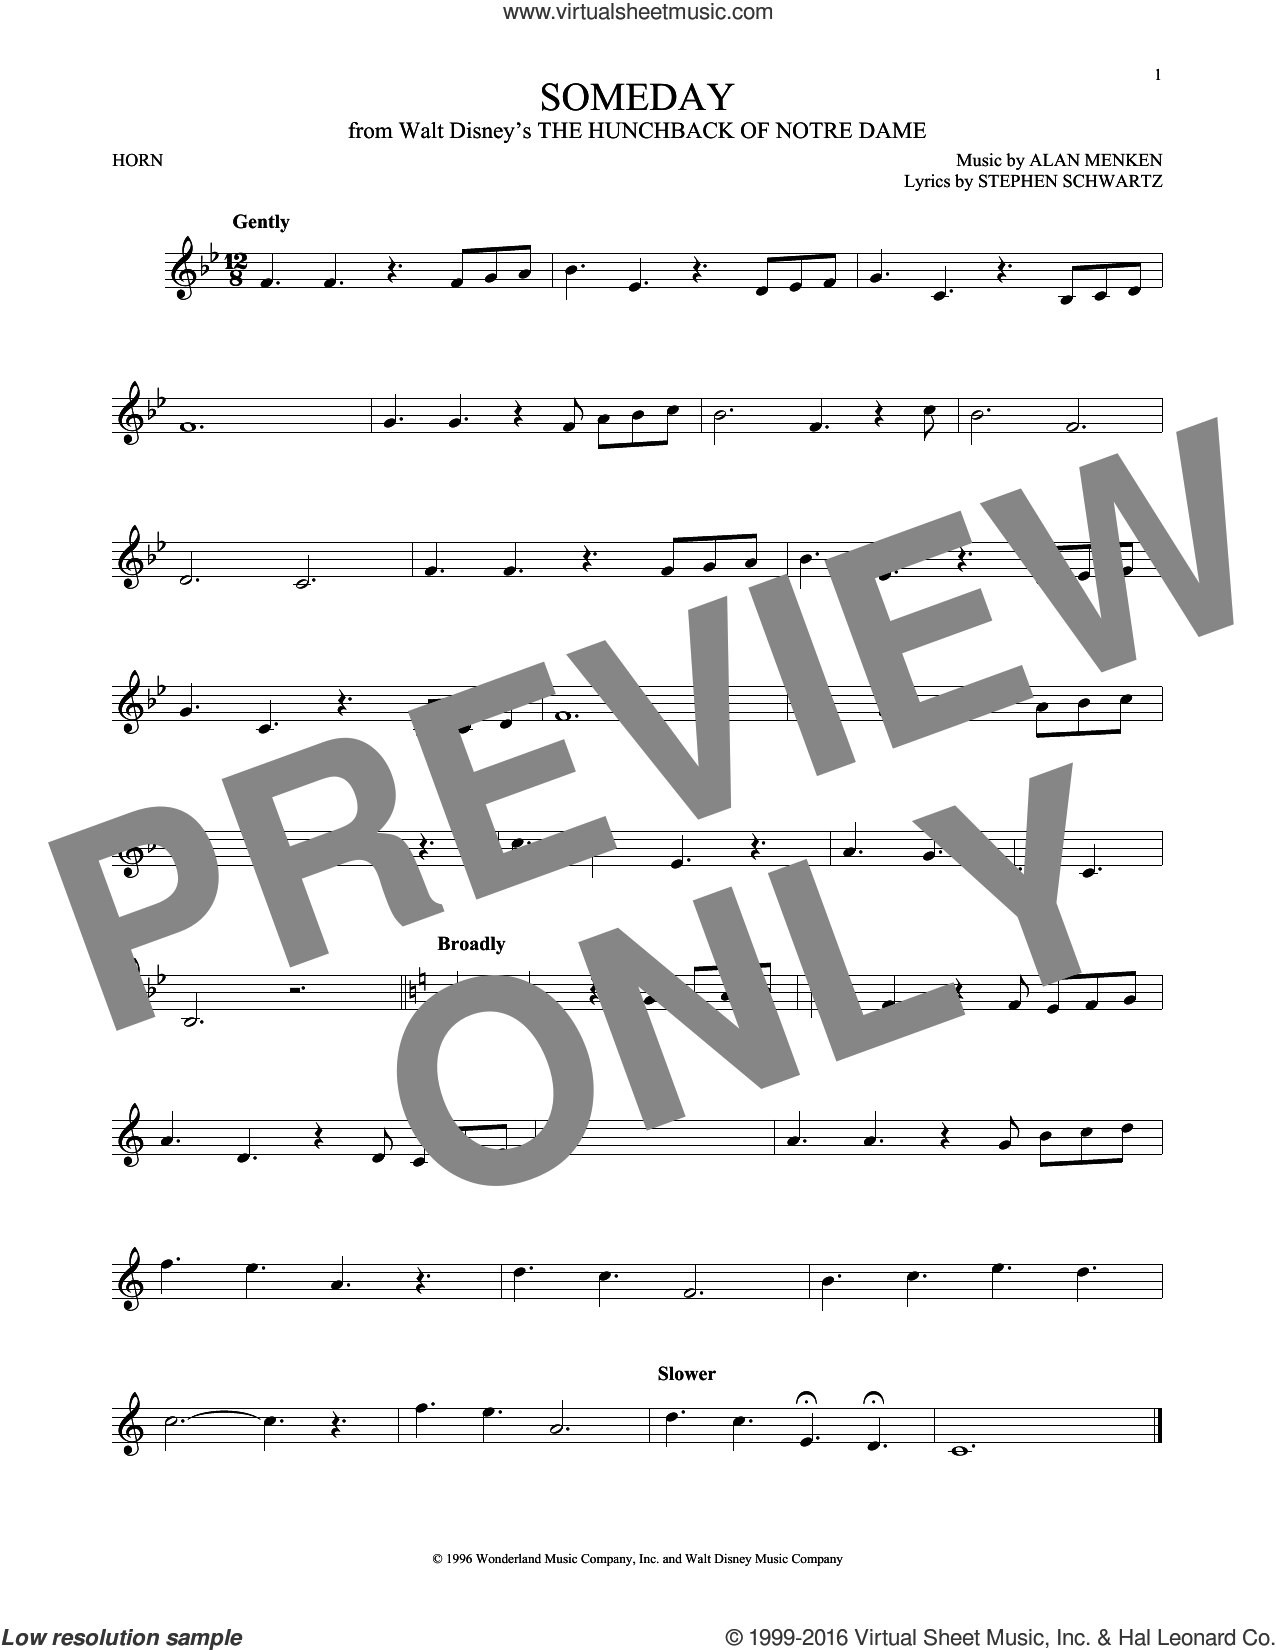 Someday (Esmeralda's Prayer) sheet music for horn solo by Alan Menken, Donna Summer and Stephen Schwartz. Score Image Preview.